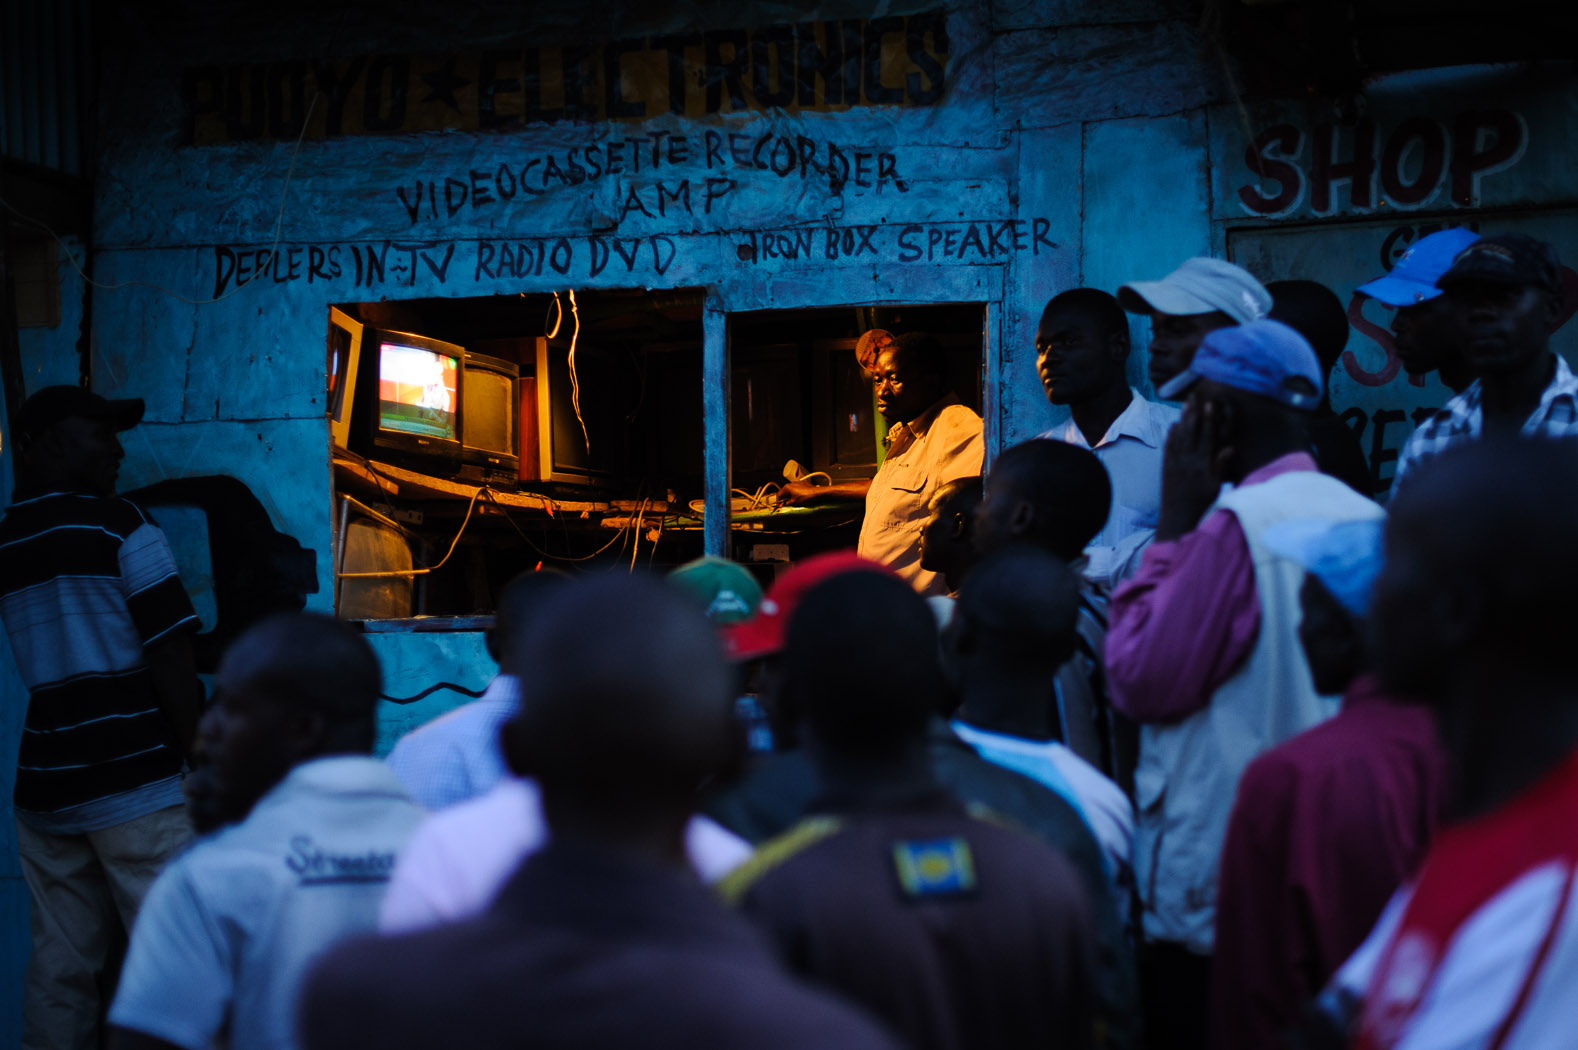 The national count, however, was marred by problems and allegations of fraud. The electronic tallying system broke-down, and the electoral commission made the controversial move to revert to a manual count. Kenyans waited for five days, glued to televisions and radios, to find out the final result as the numbers trickled in.